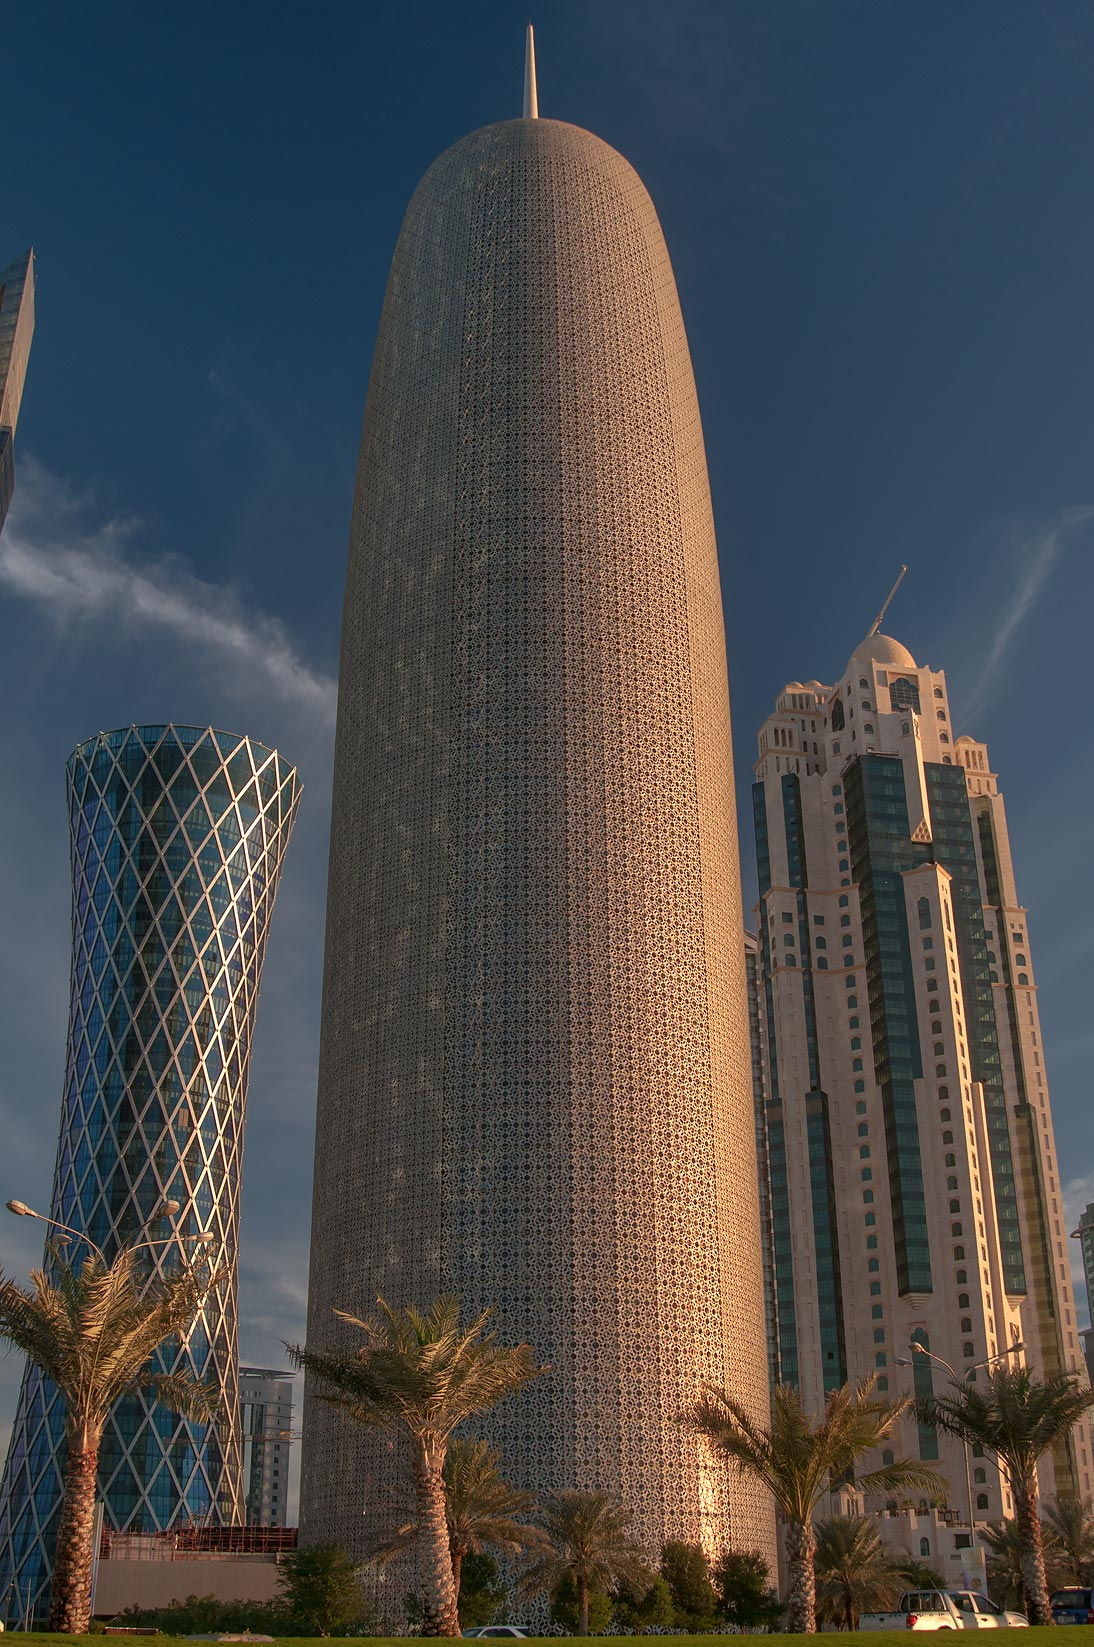 Tornado and Burj Qatar towers in West Bay at morning. Doha, Qatar